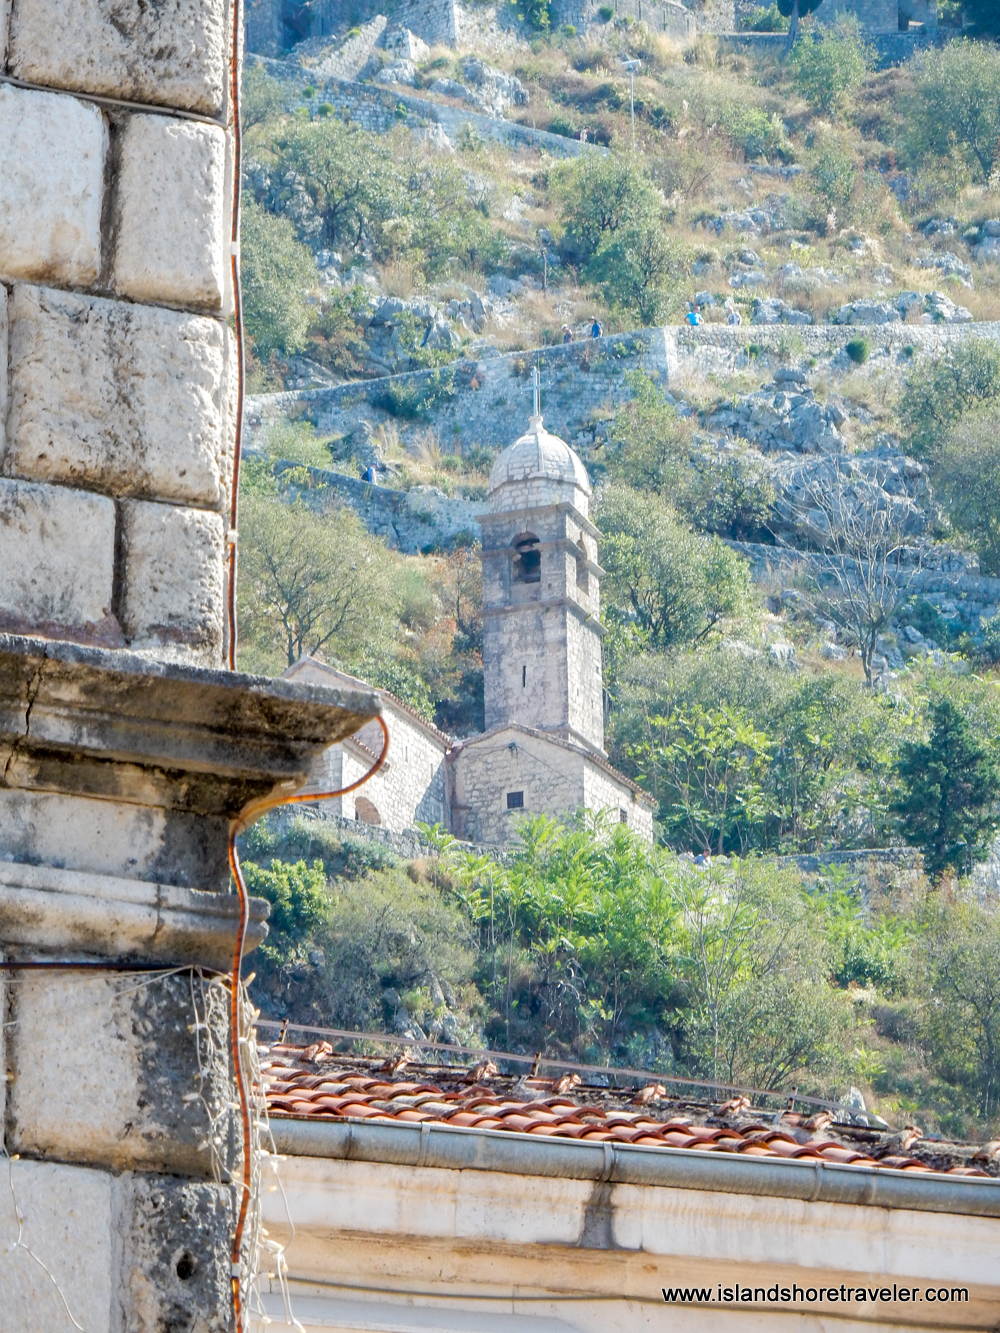 Church of Our Lady of Remedy, Kotor, Montenegro